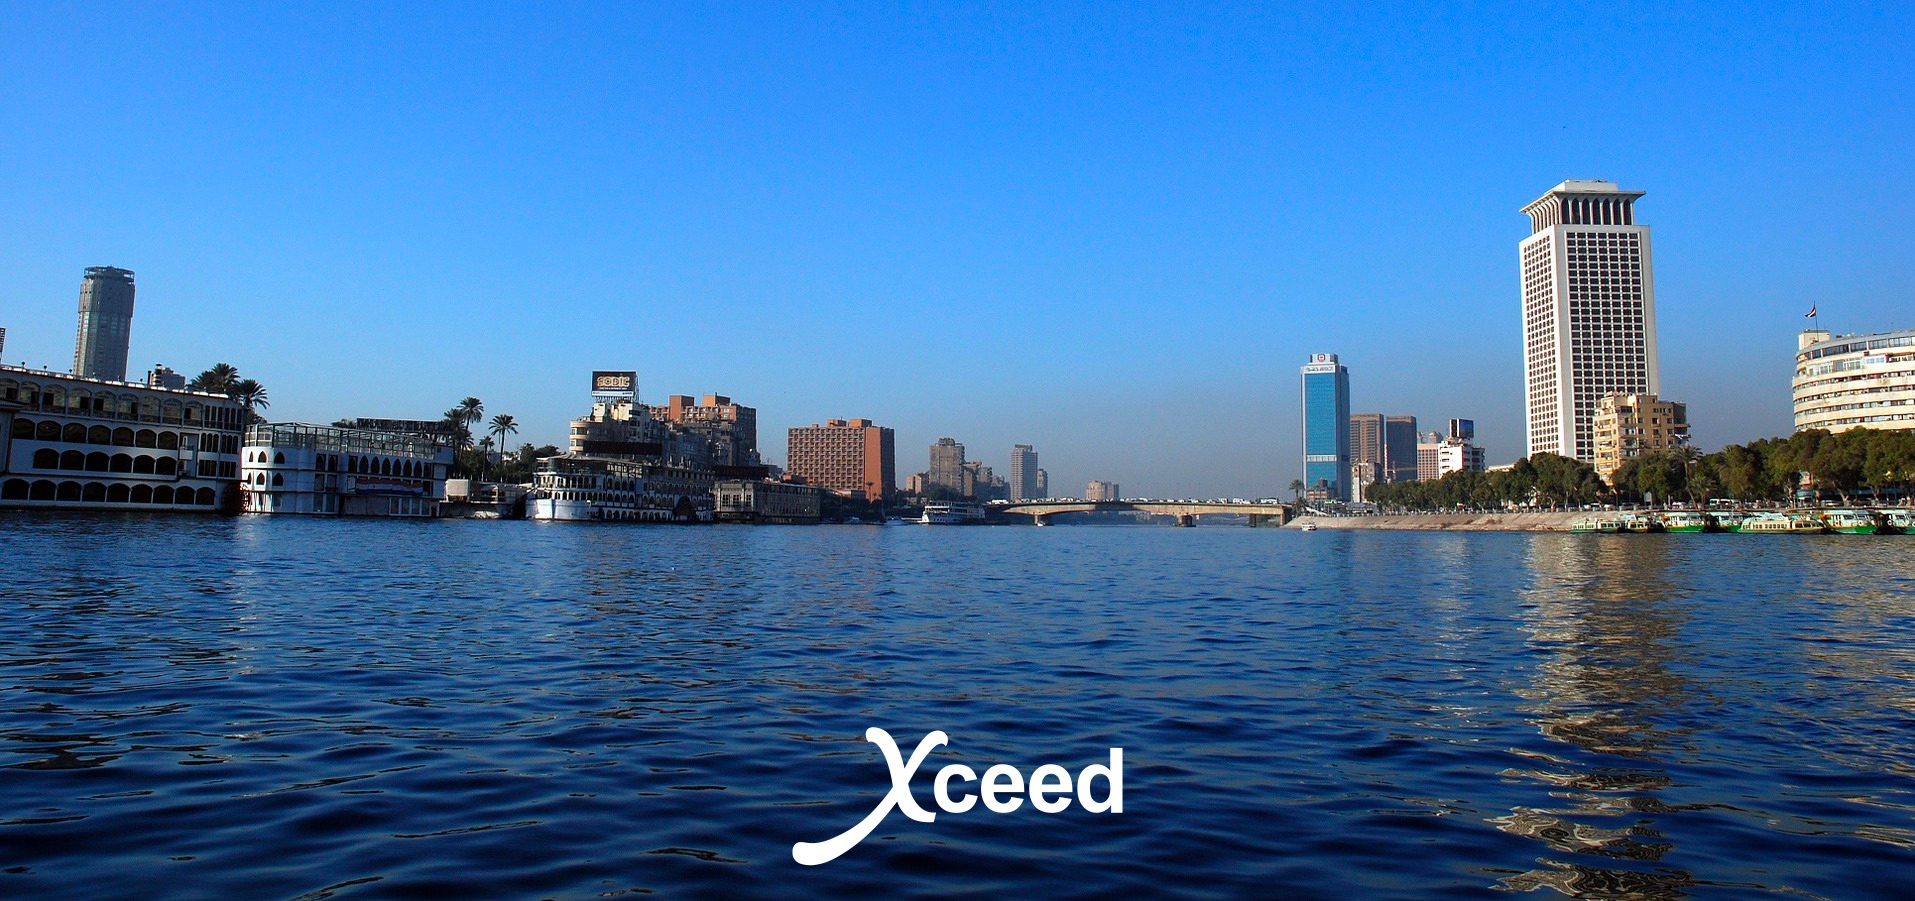 Egypt: A Growing and Maturing BPO and ITO Hub of Choice